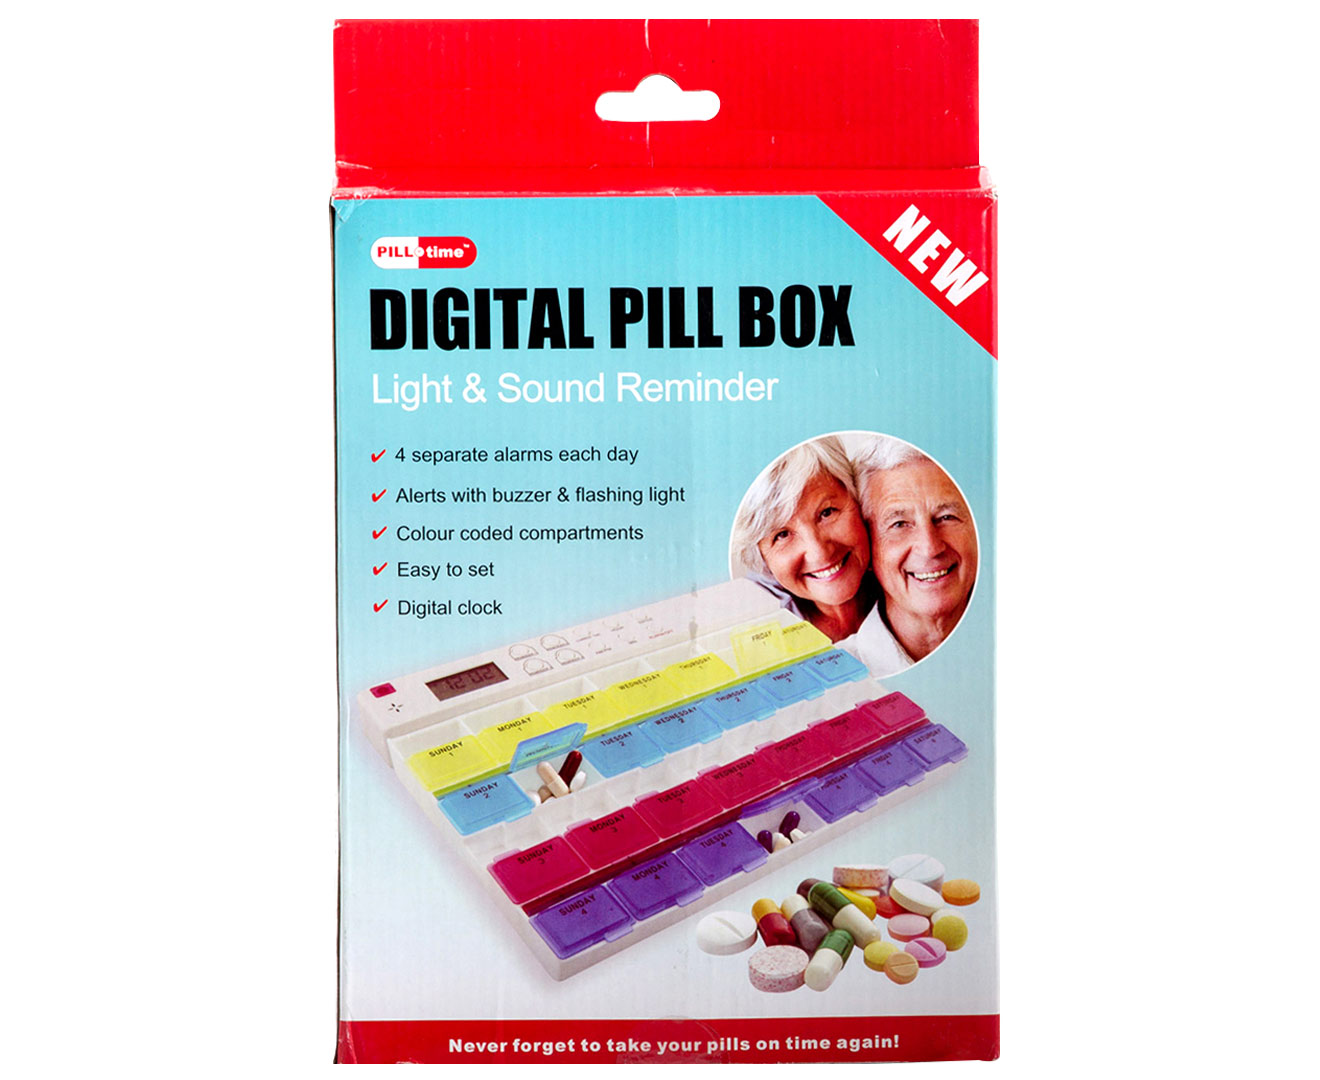 chucks drug box Search the world's information, including webpages, images, videos and more google has many special features to help you find exactly what you're looking for.